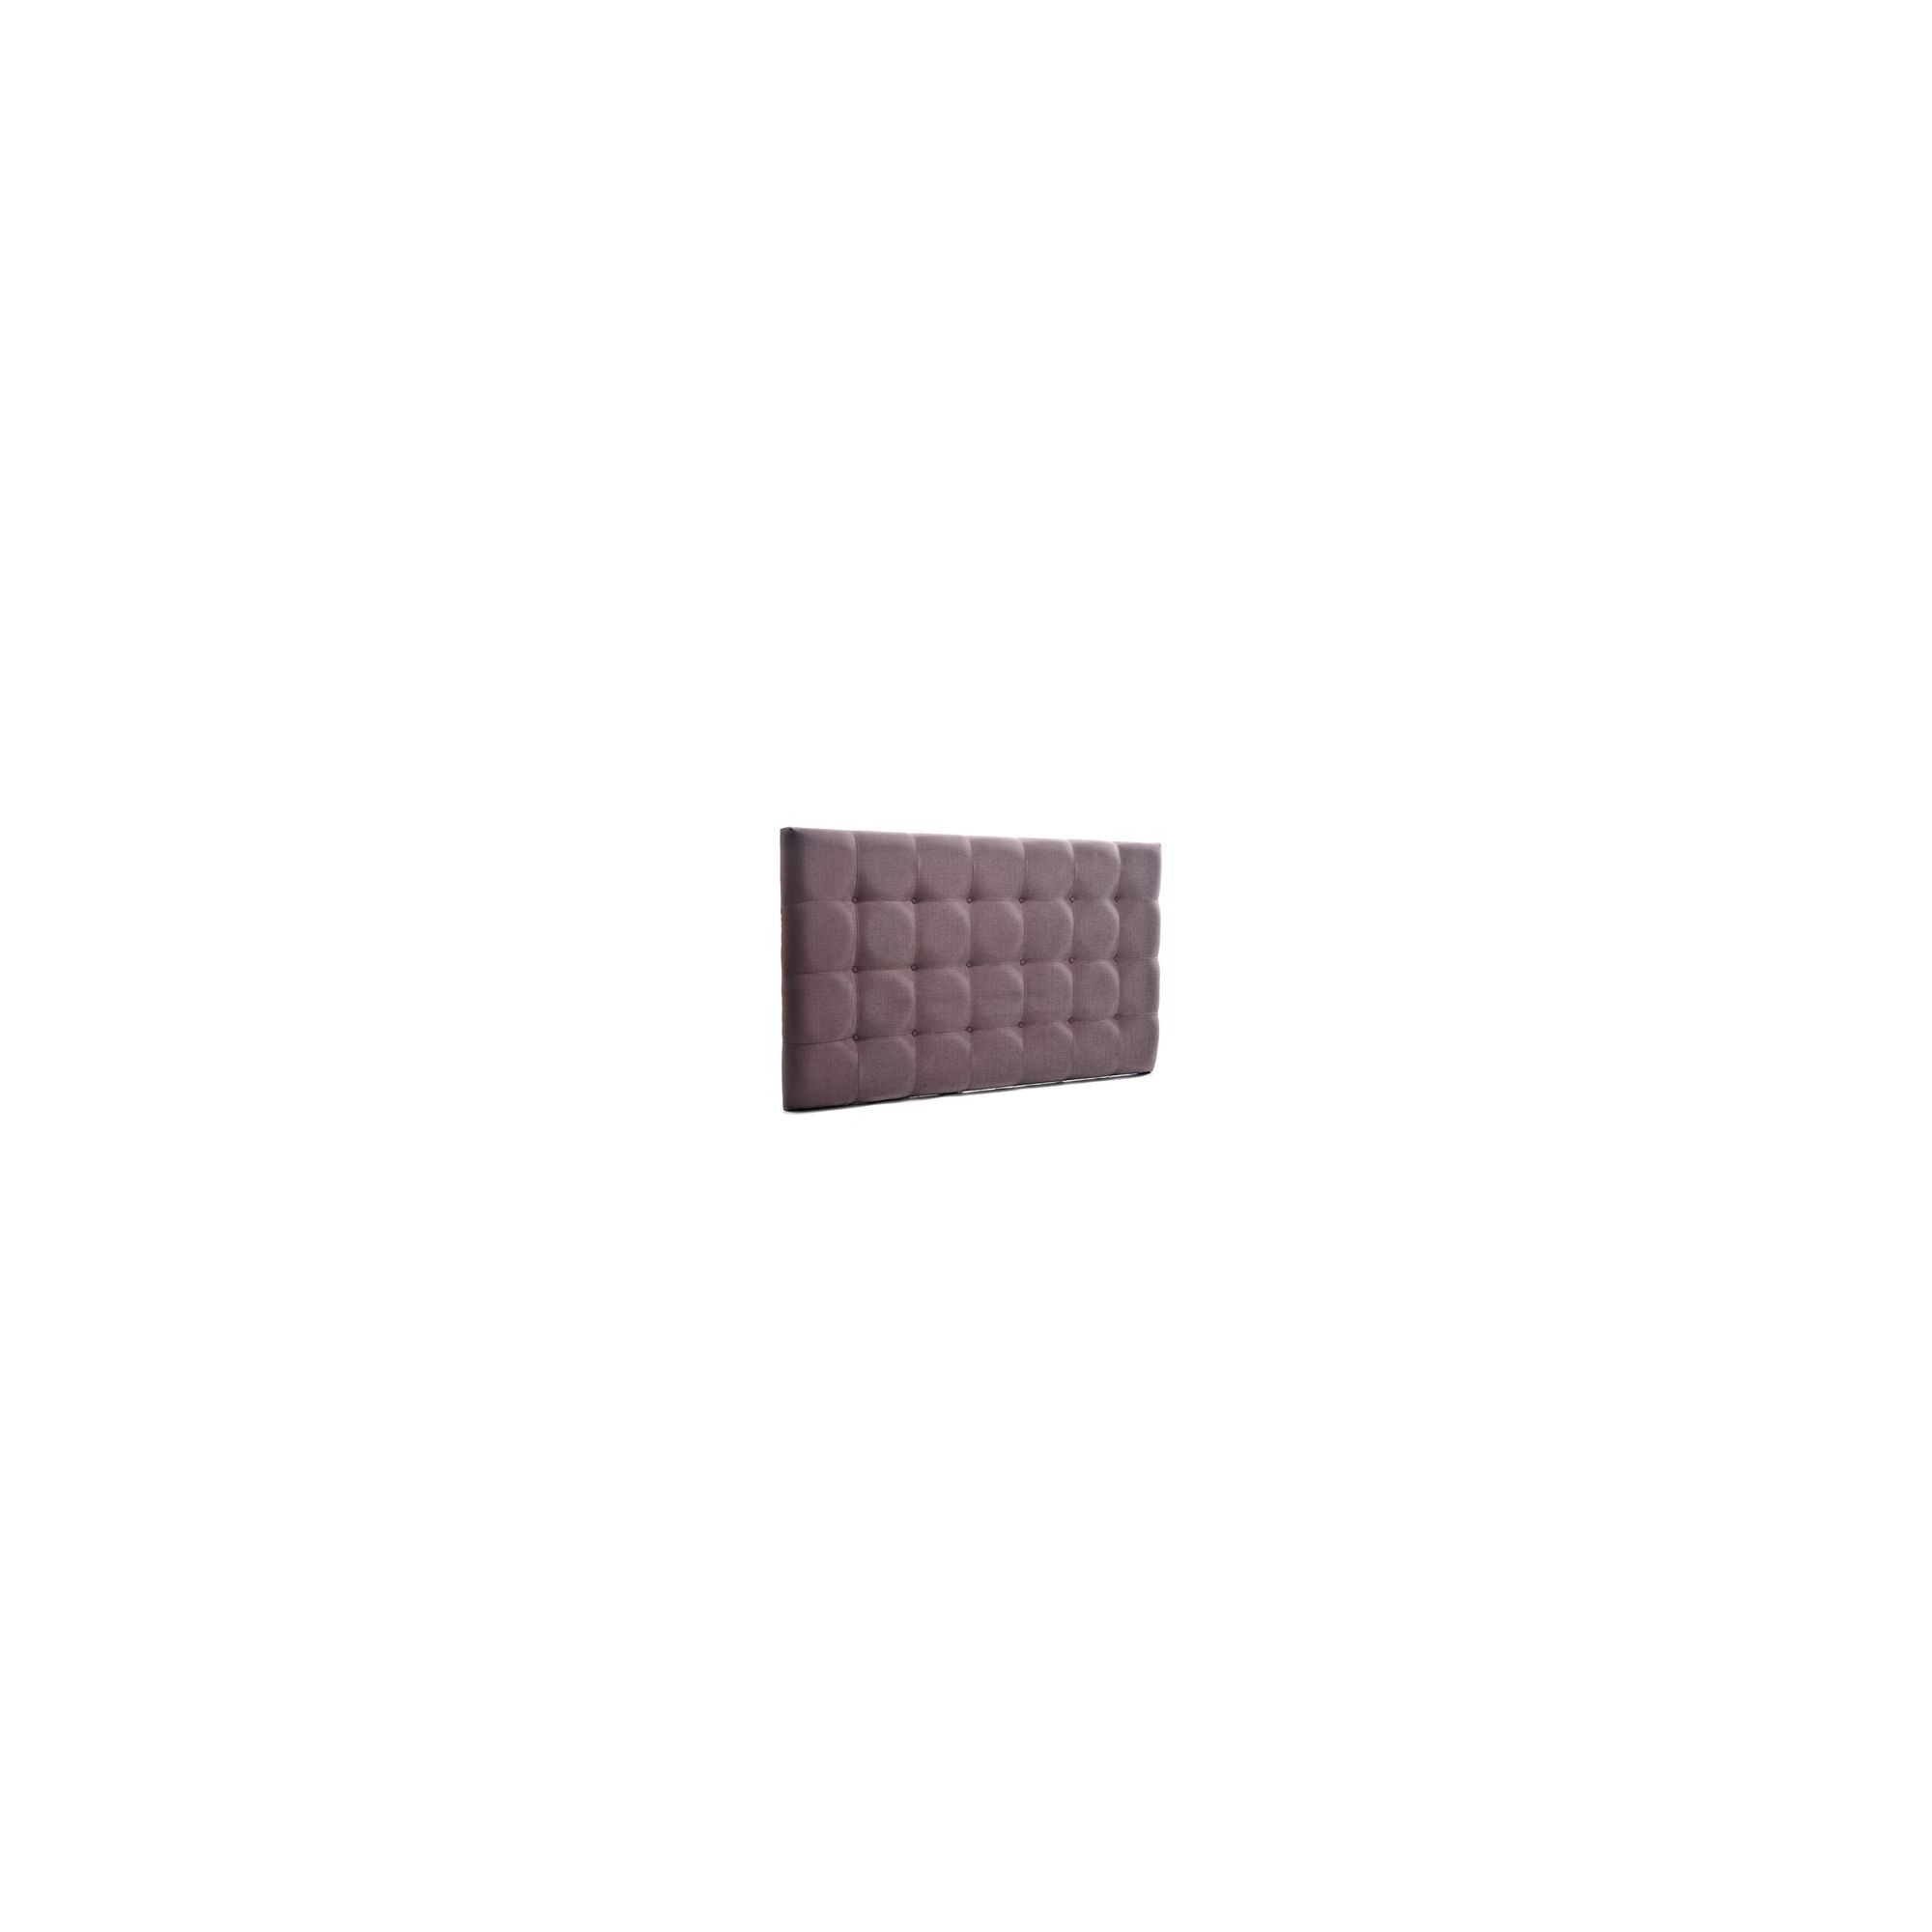 PC Upholstery Florida Headboard - Espresso - 3' Single at Tesco Direct